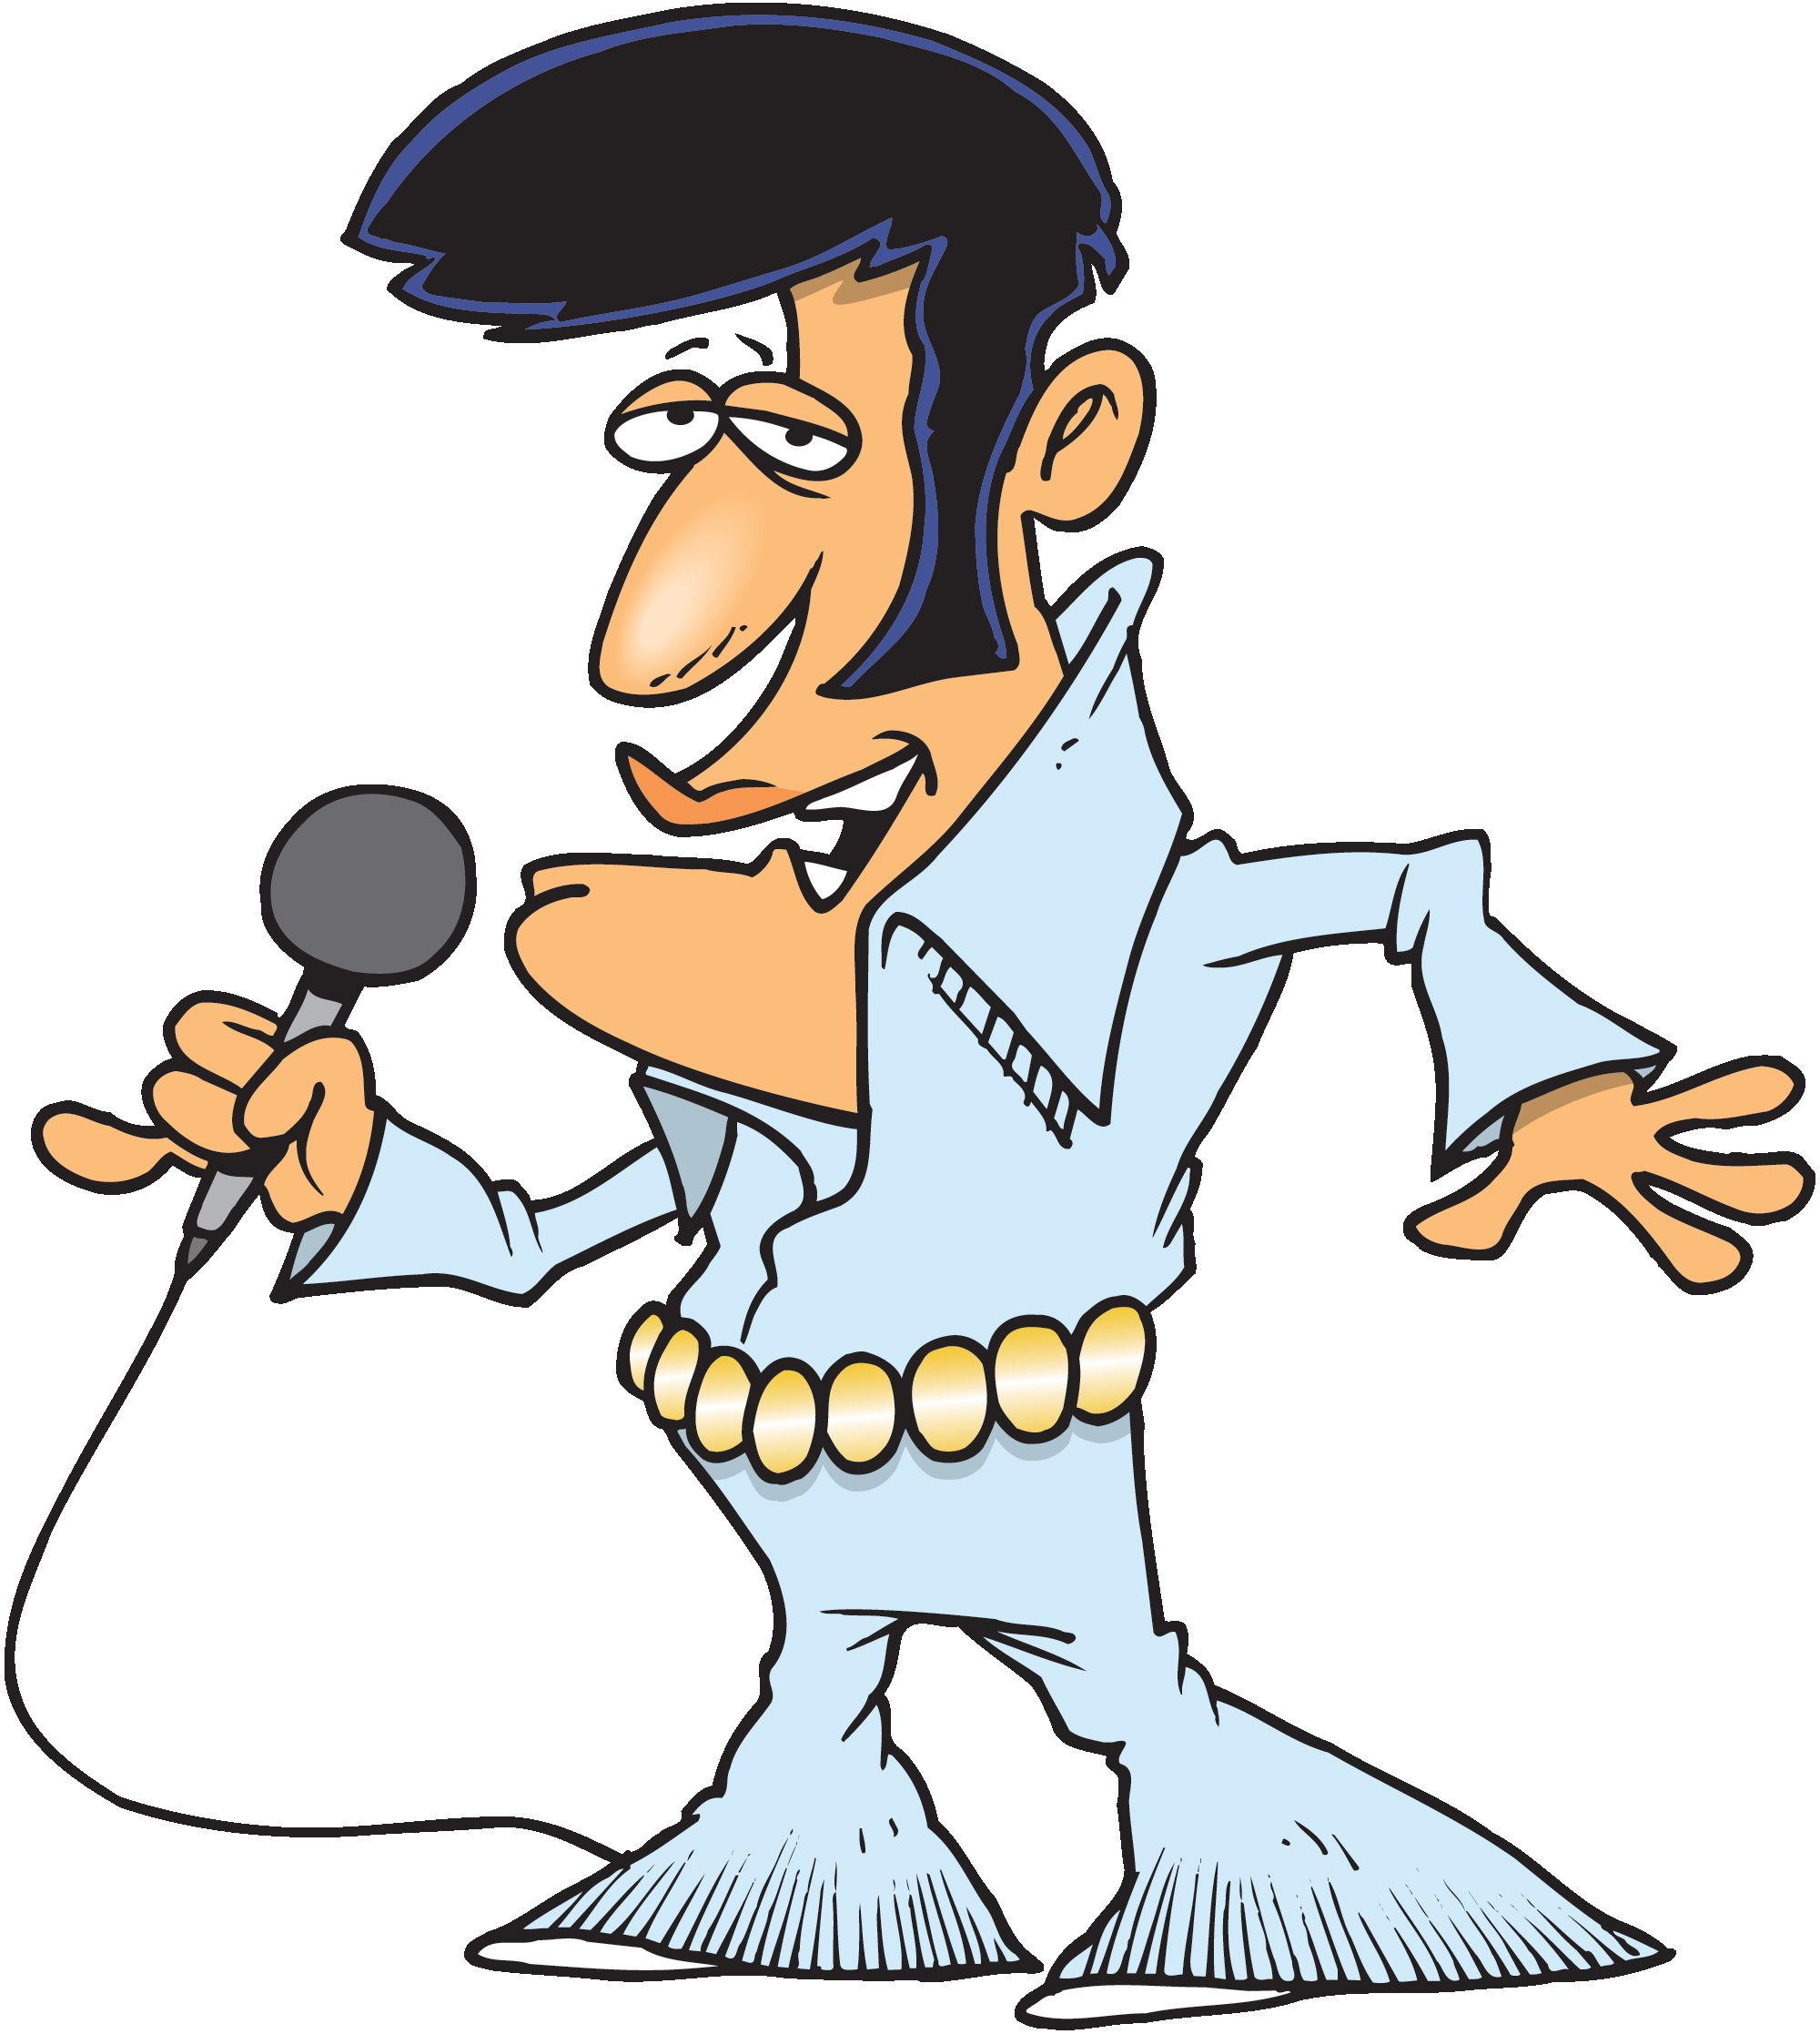 Elvis caricature clipart picture royalty free download Elvis Smiley Face Clipart | elvis in 2019 | Elvis presley, Cartoon ... picture royalty free download